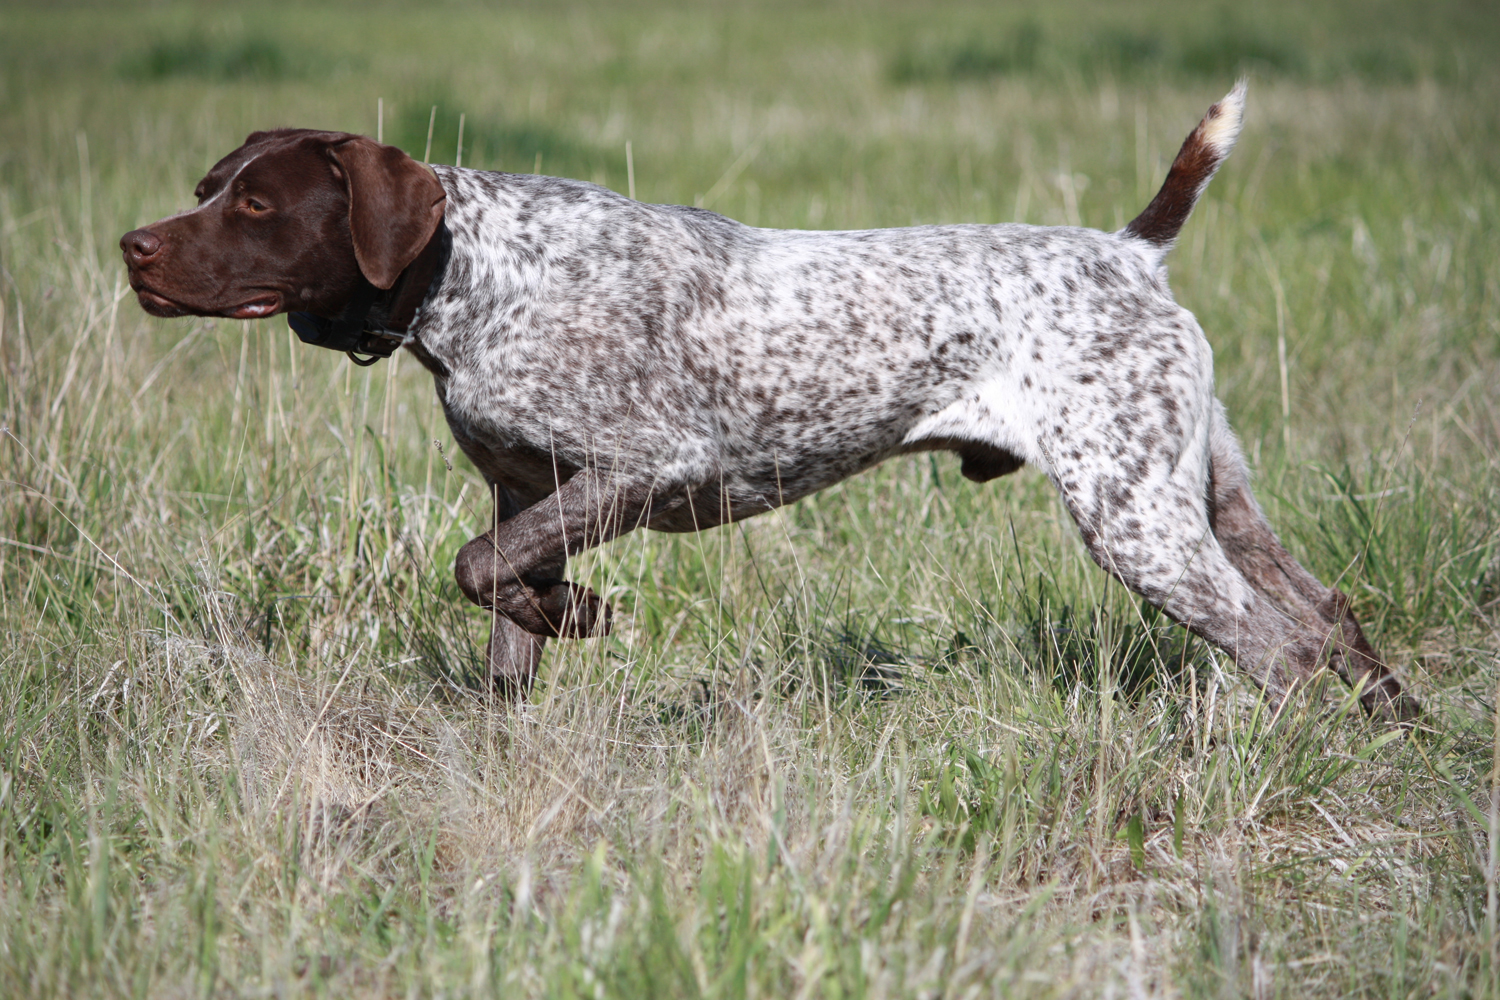 Watching German Shorthaired Pointer dog  wallpaper